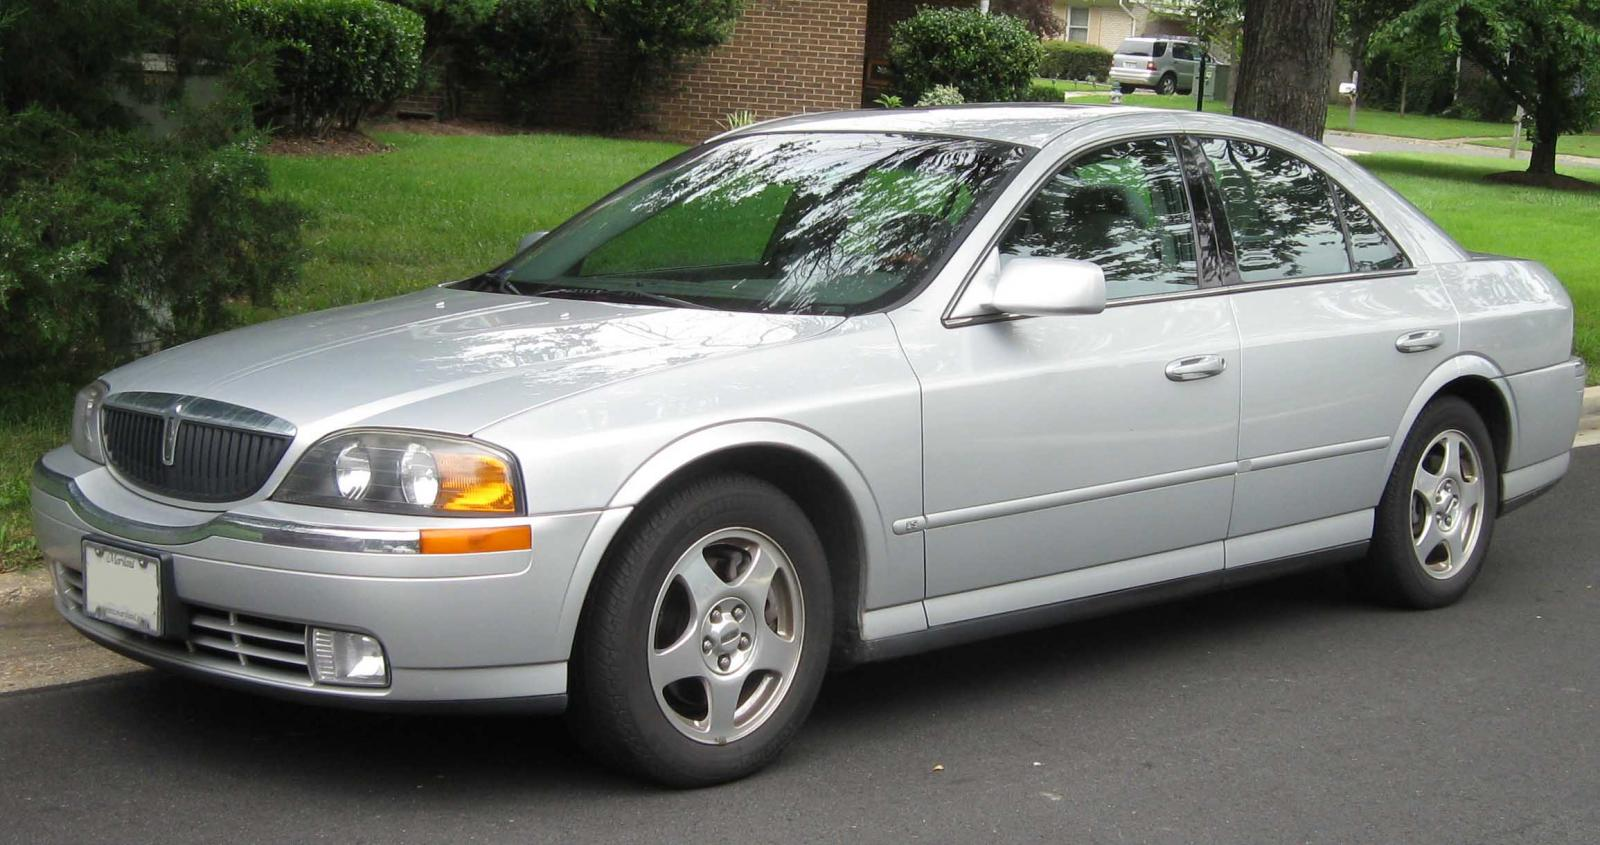 lincoln ls #3 800 1024 1280 1600 origin